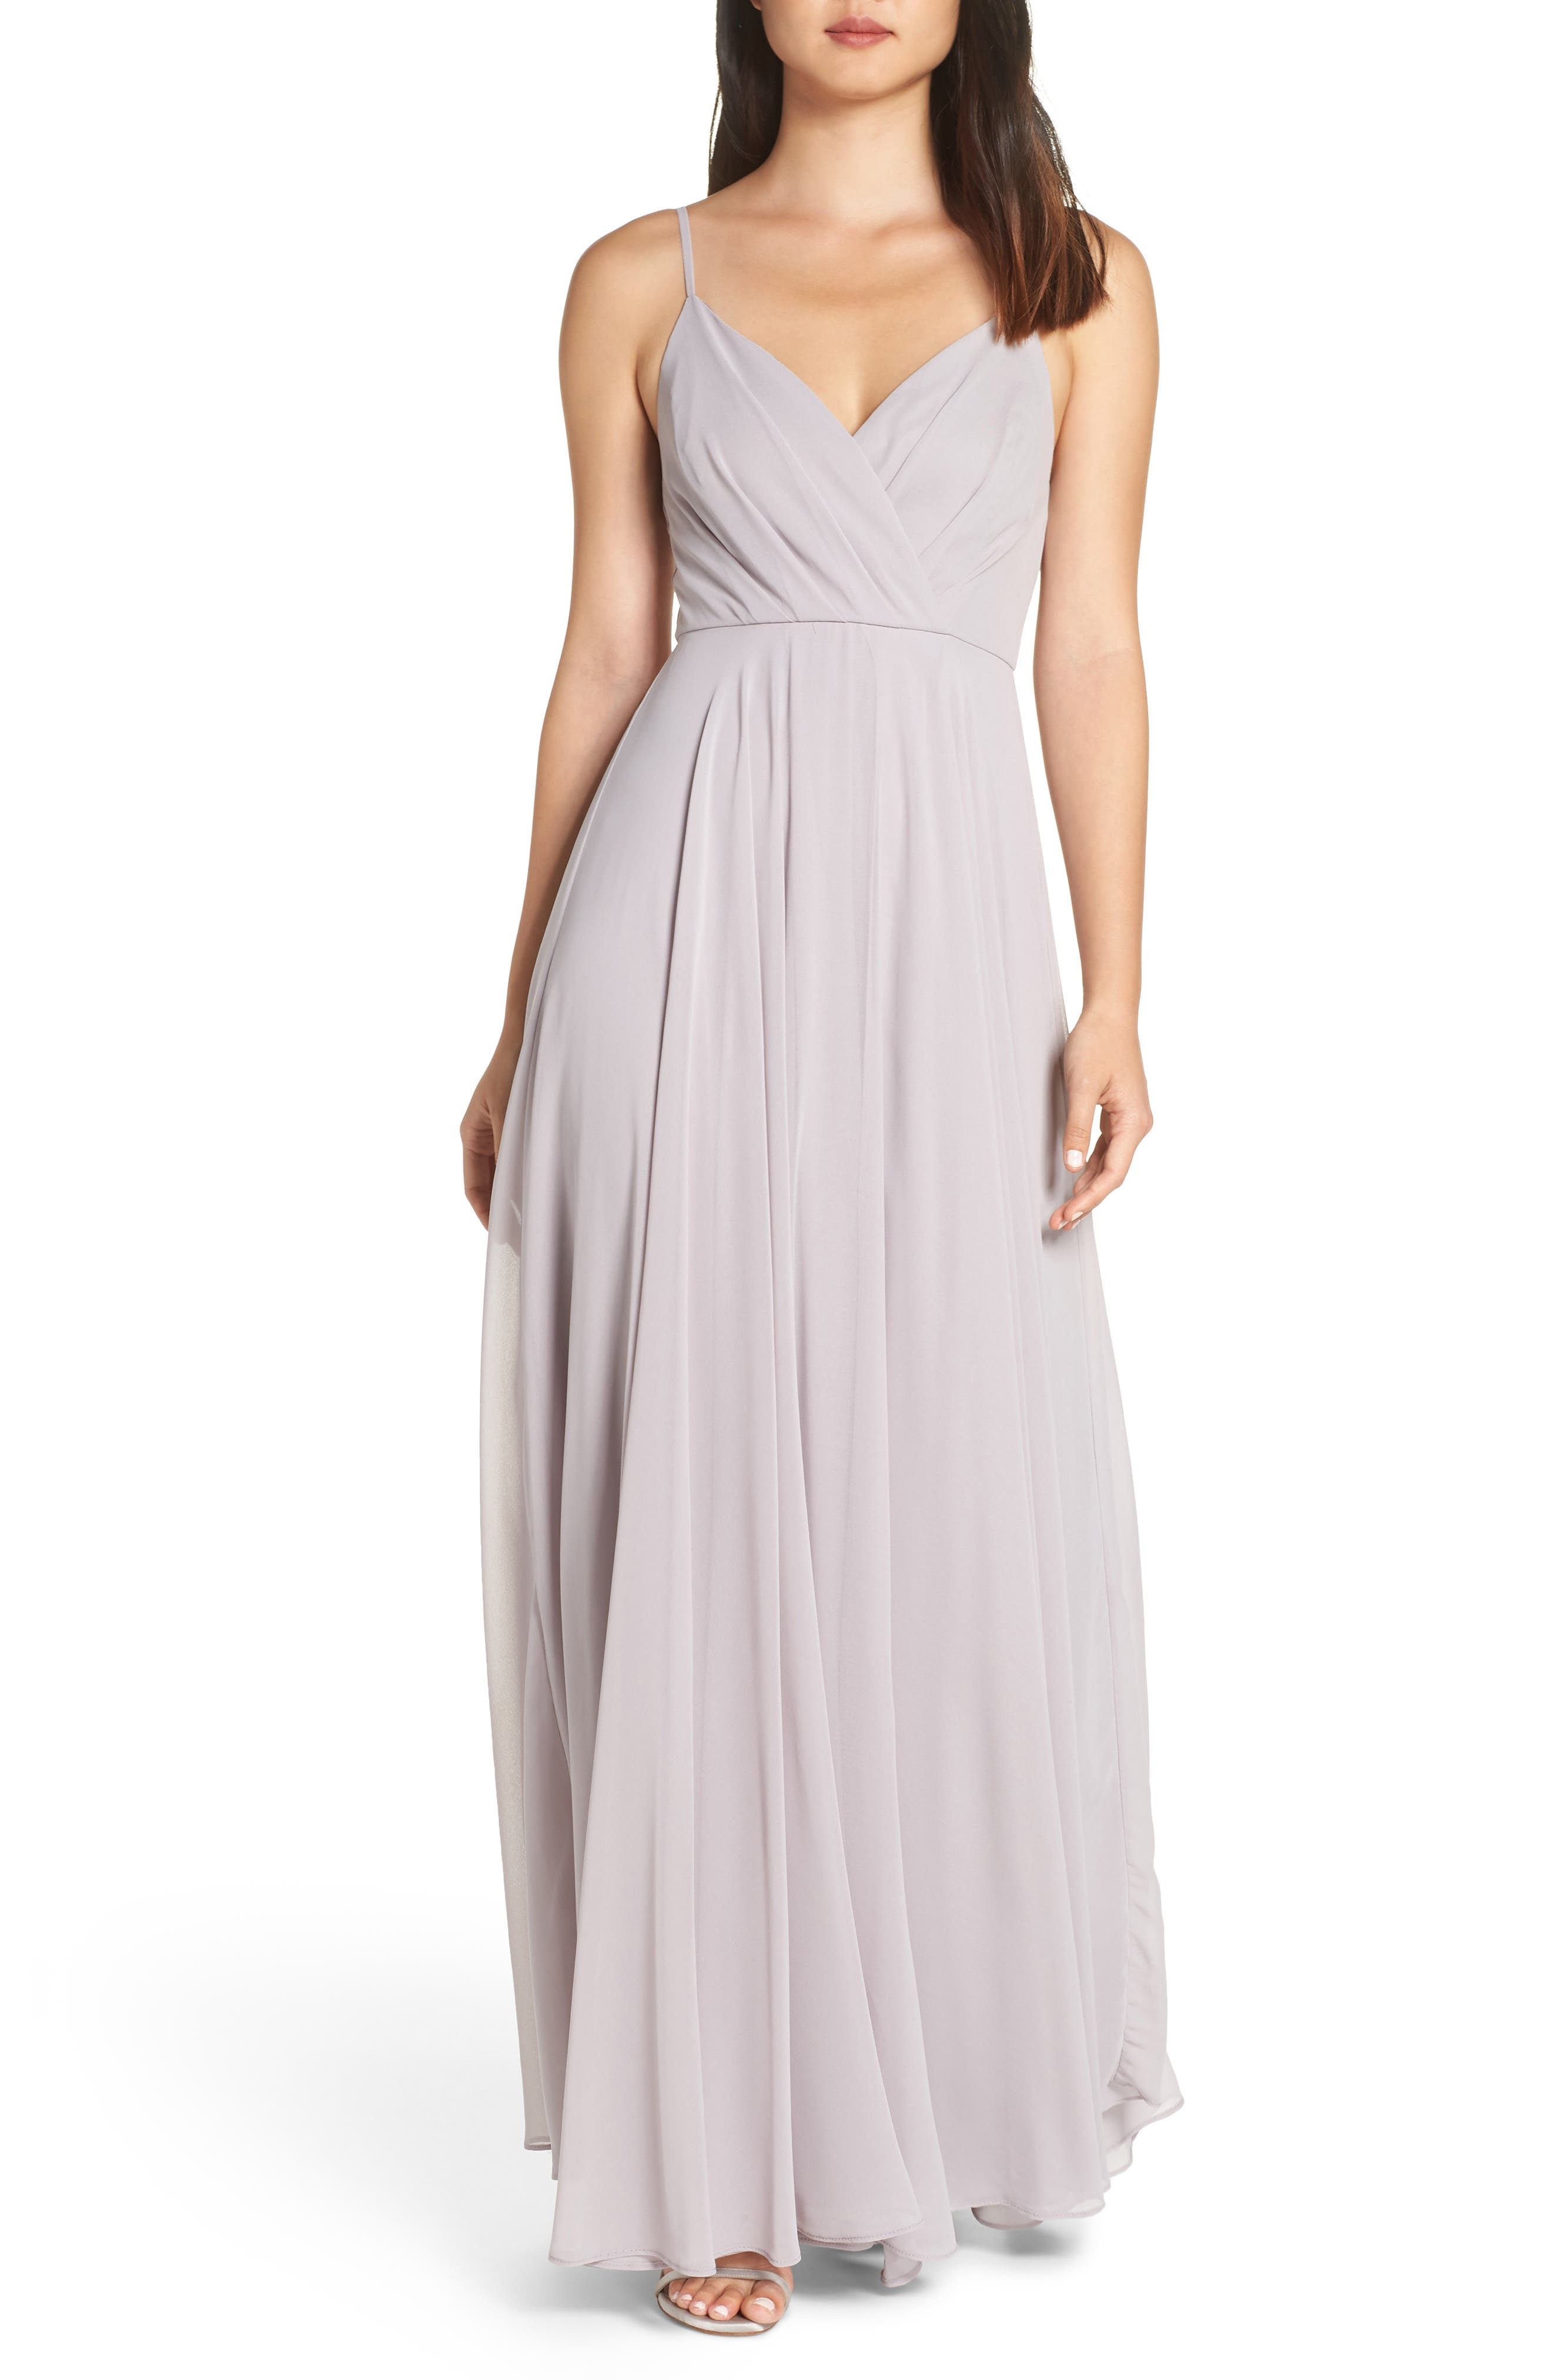 1920s Evening Dresses for Sale